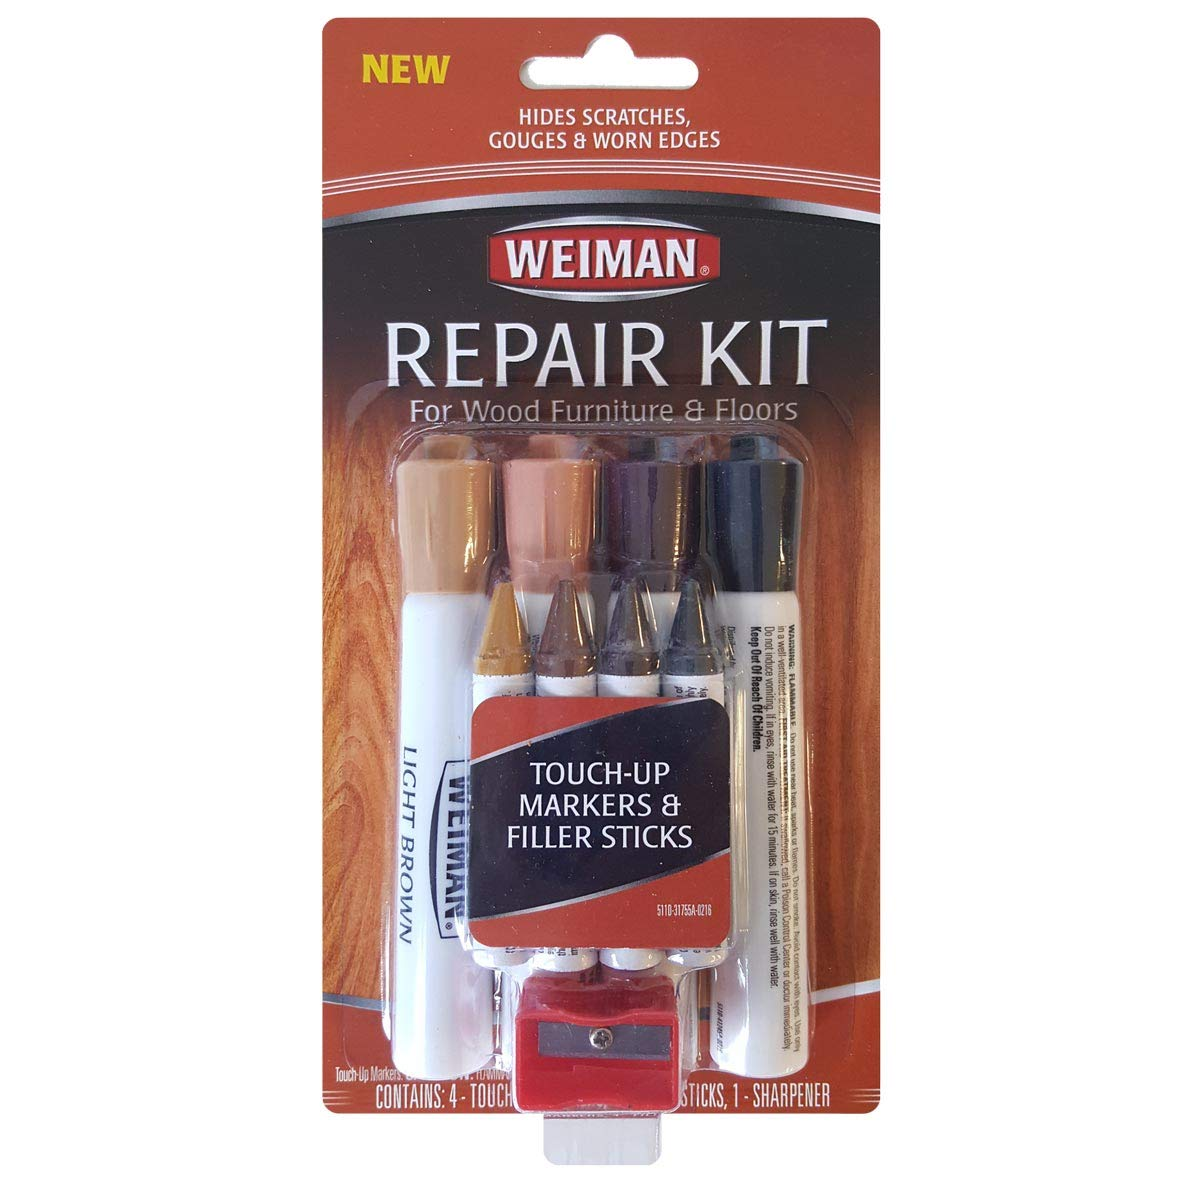 Weiman Wood Repair System Kit 4 Filler Sticks 4 Touch Up